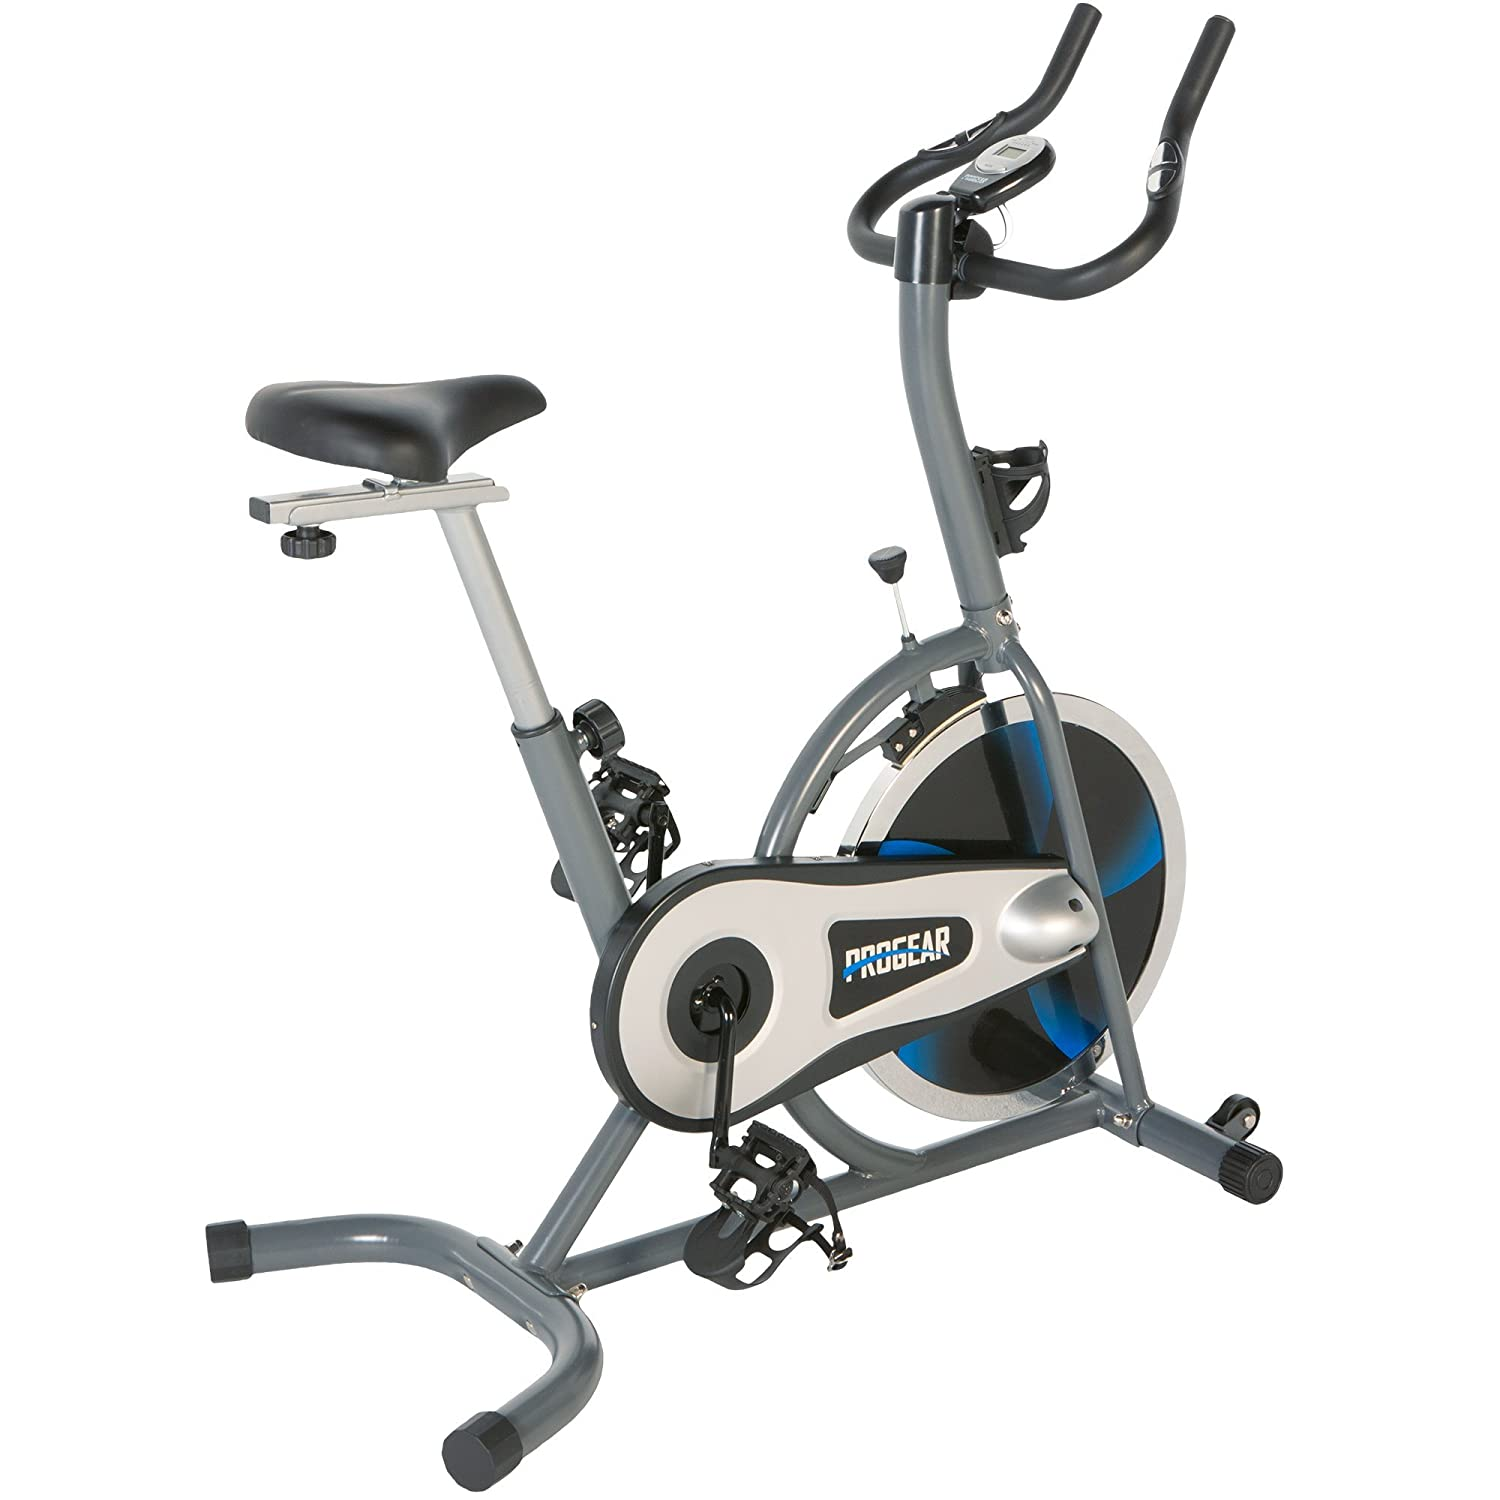 ProGear 100S Exercise Bike/Indoor Training Cycle